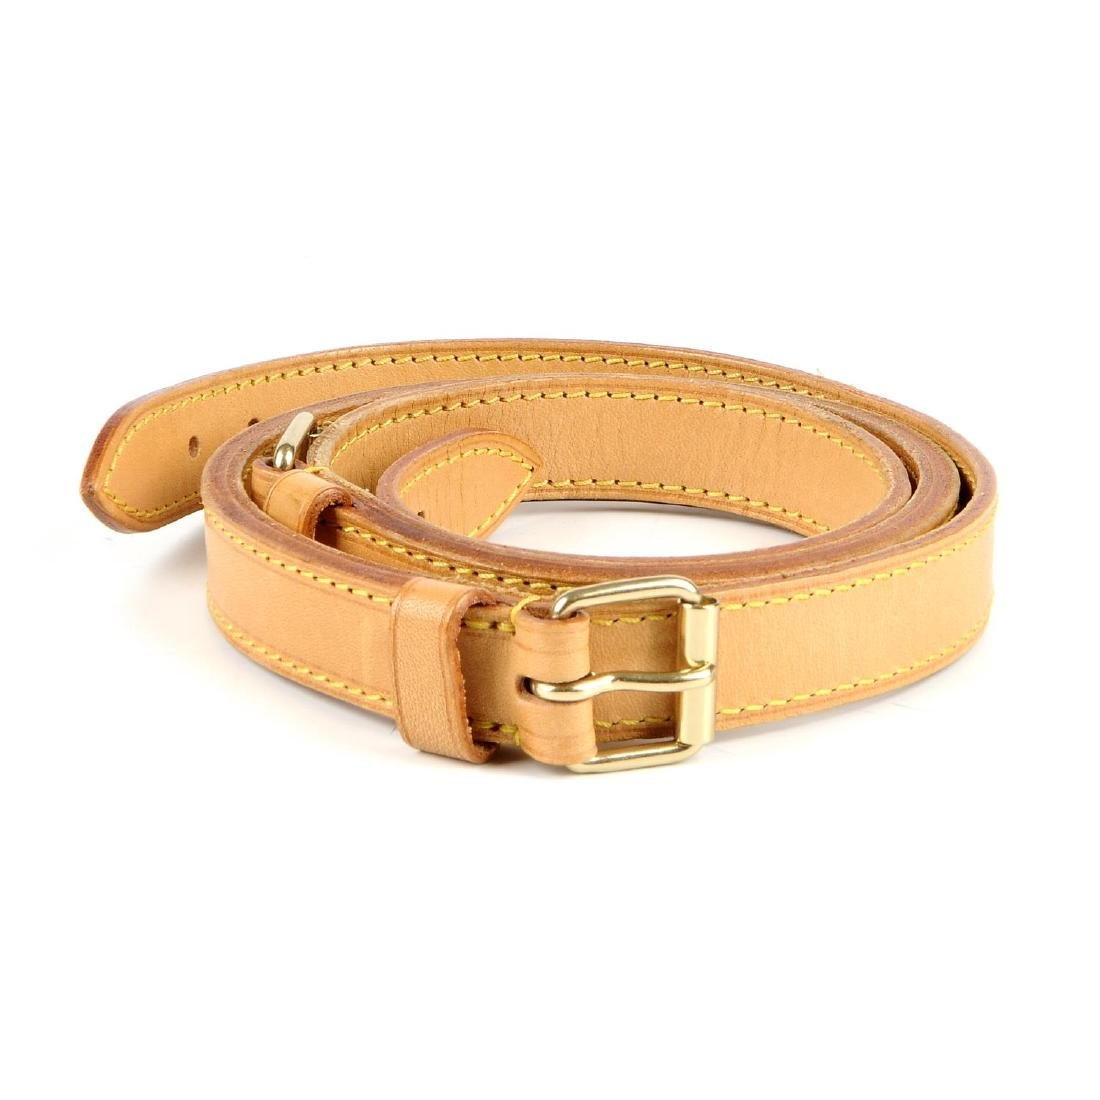 LOUIS VUITTON - a leather shoulder strap. Crafted from